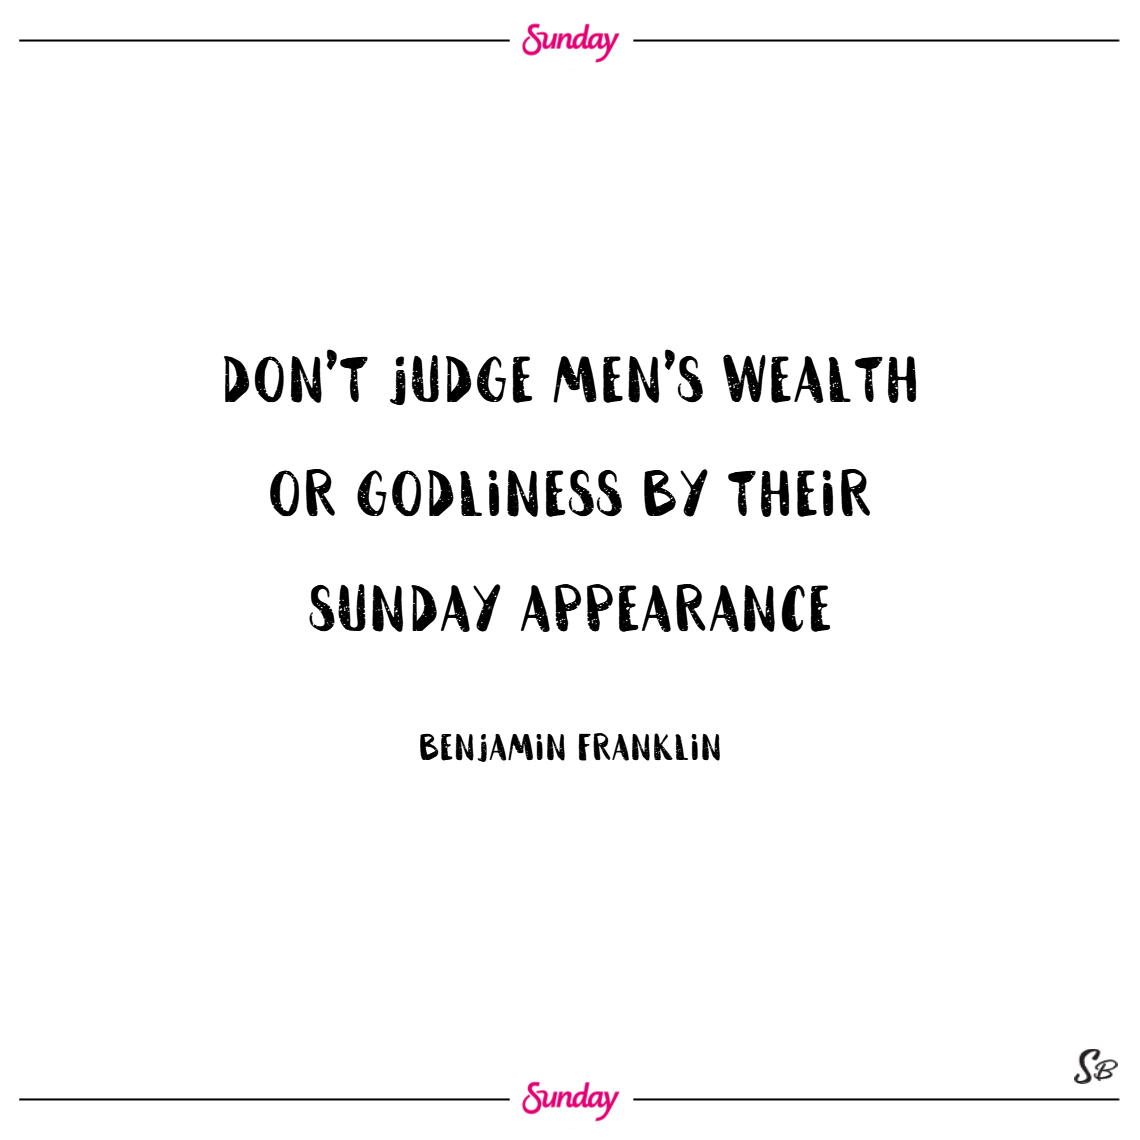 Don't judge men's wealth or godliness by their sunday appearance. – benjamin franklin